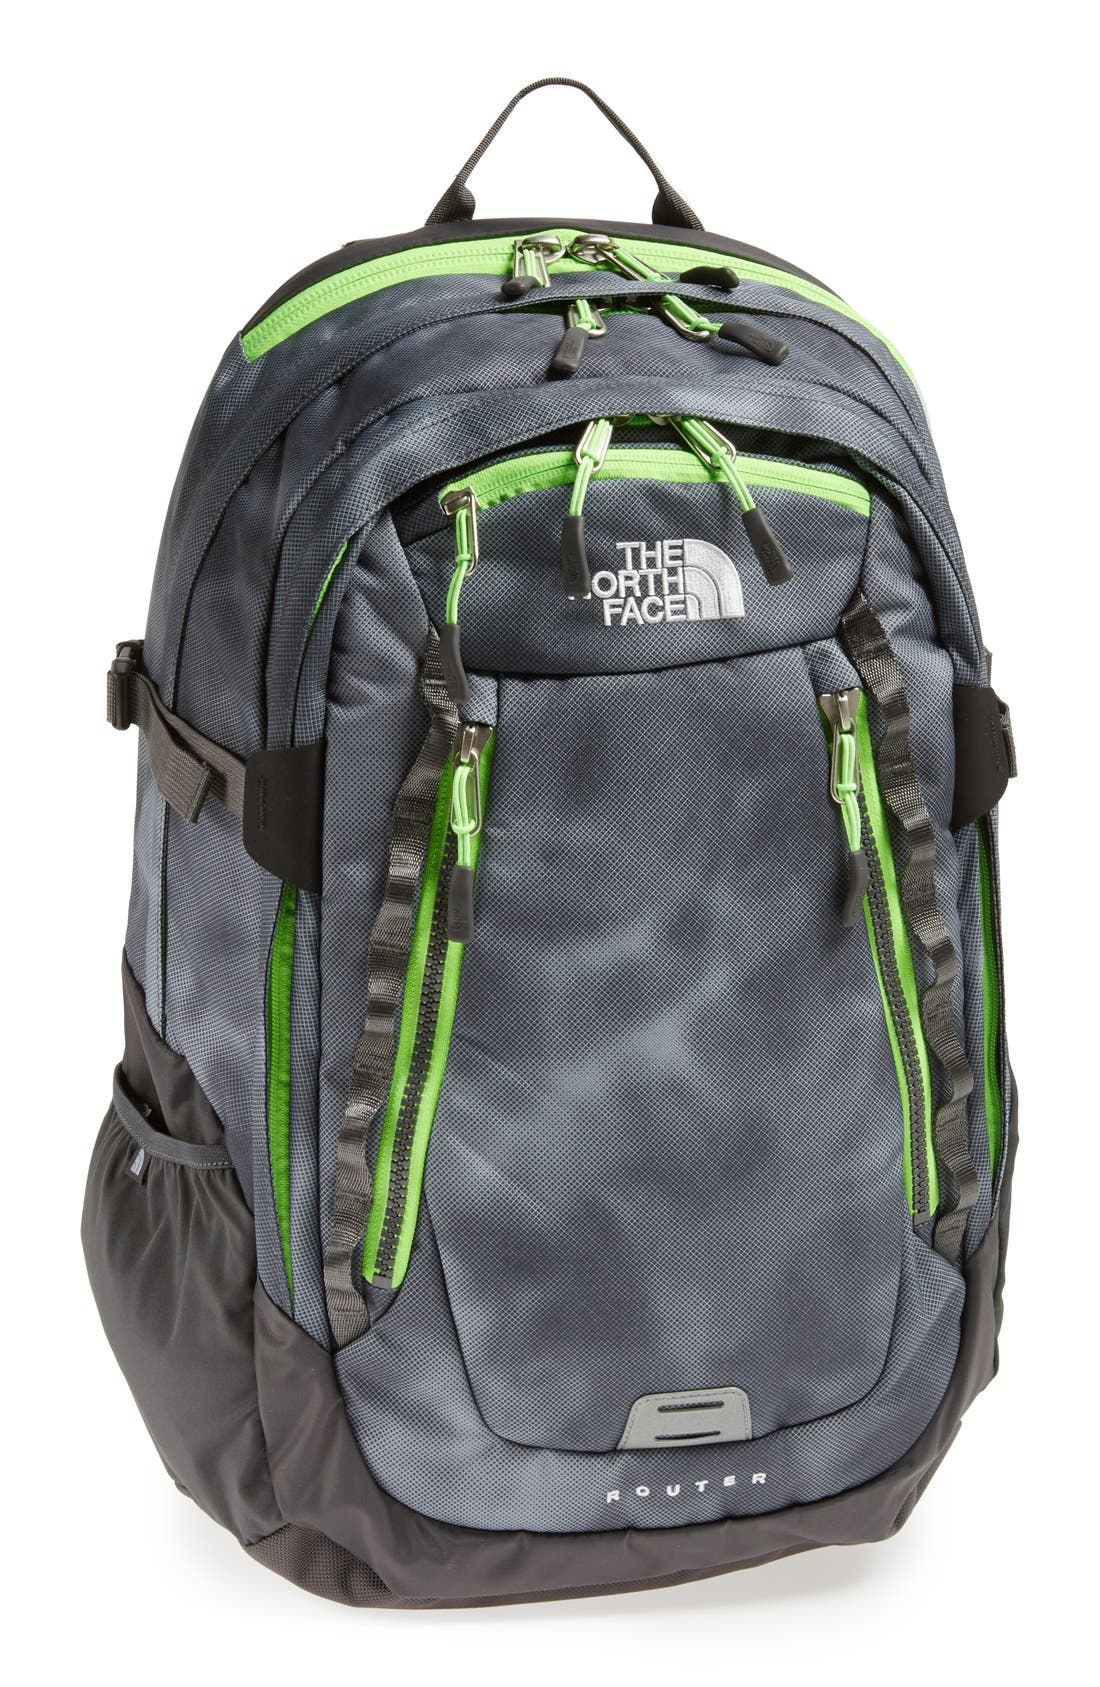 Main Image - The North Face 'Router' Backpack